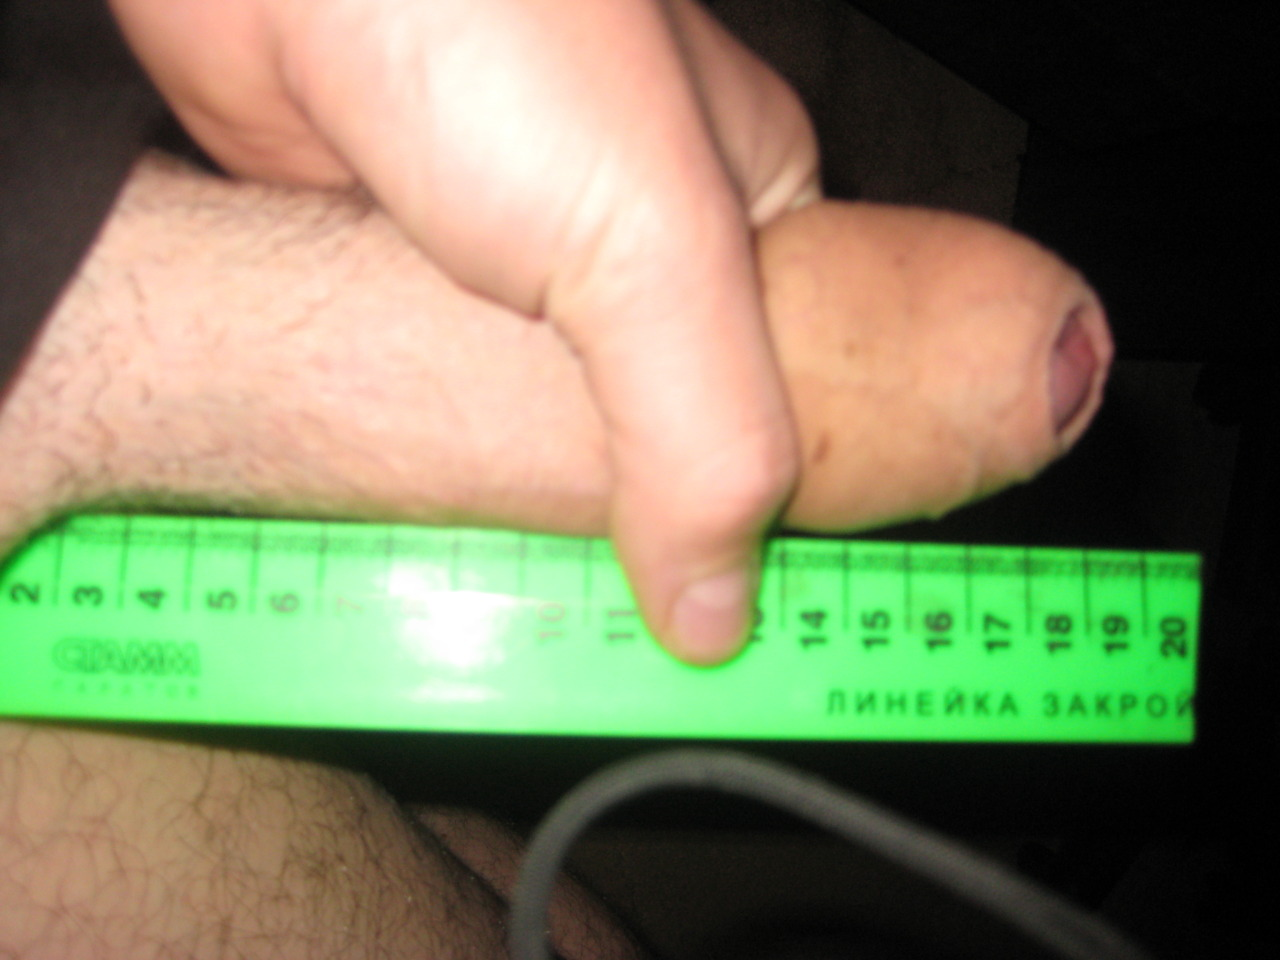 Measuring Dick Size 15